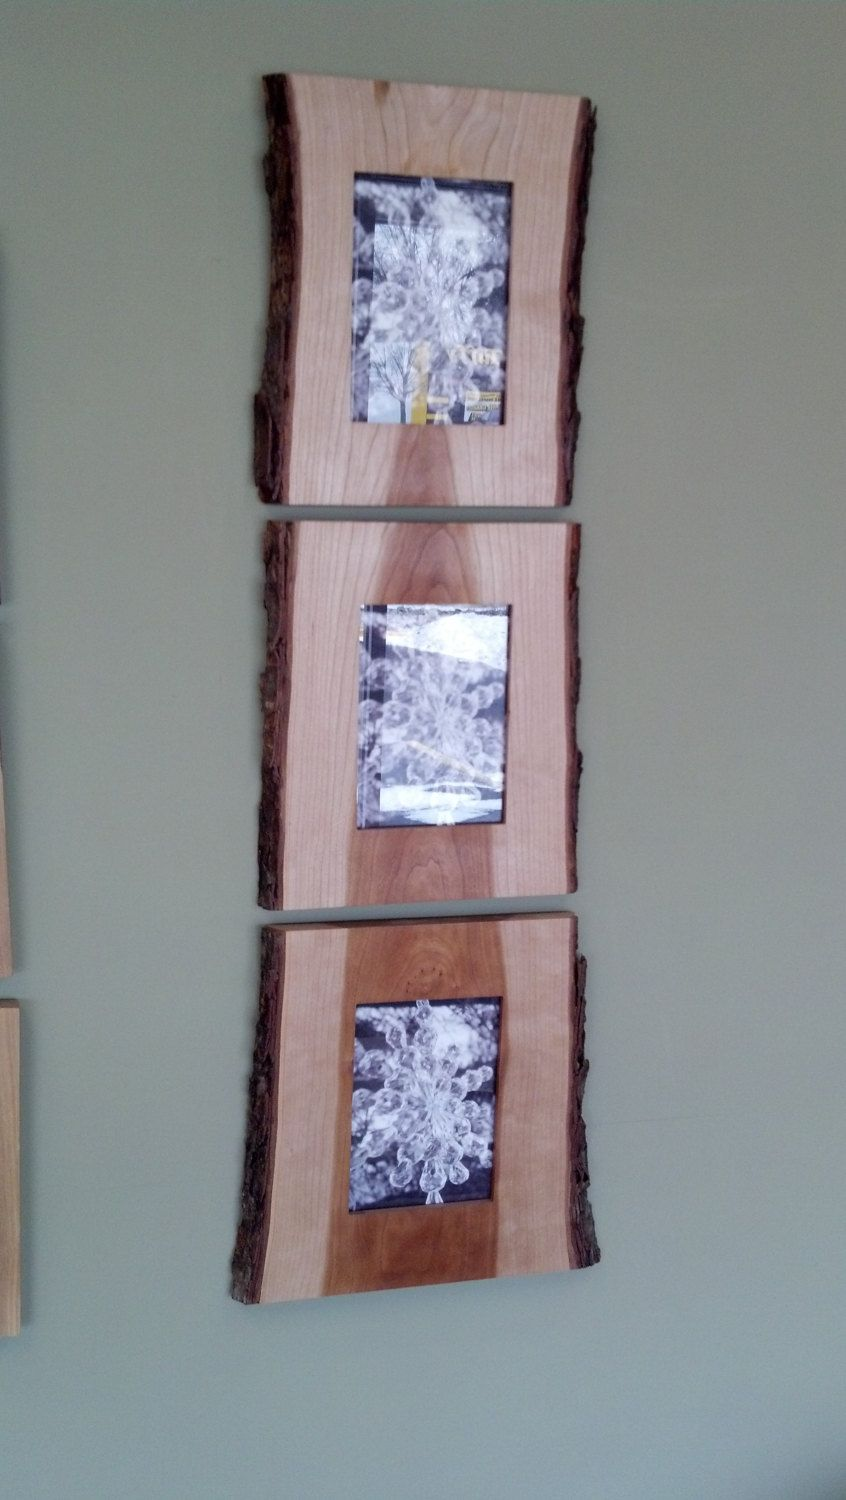 Live edge picture frames carpentry third and woods latest from gillengerten carpentry three live edge picture frames via etsy jeuxipadfo Gallery